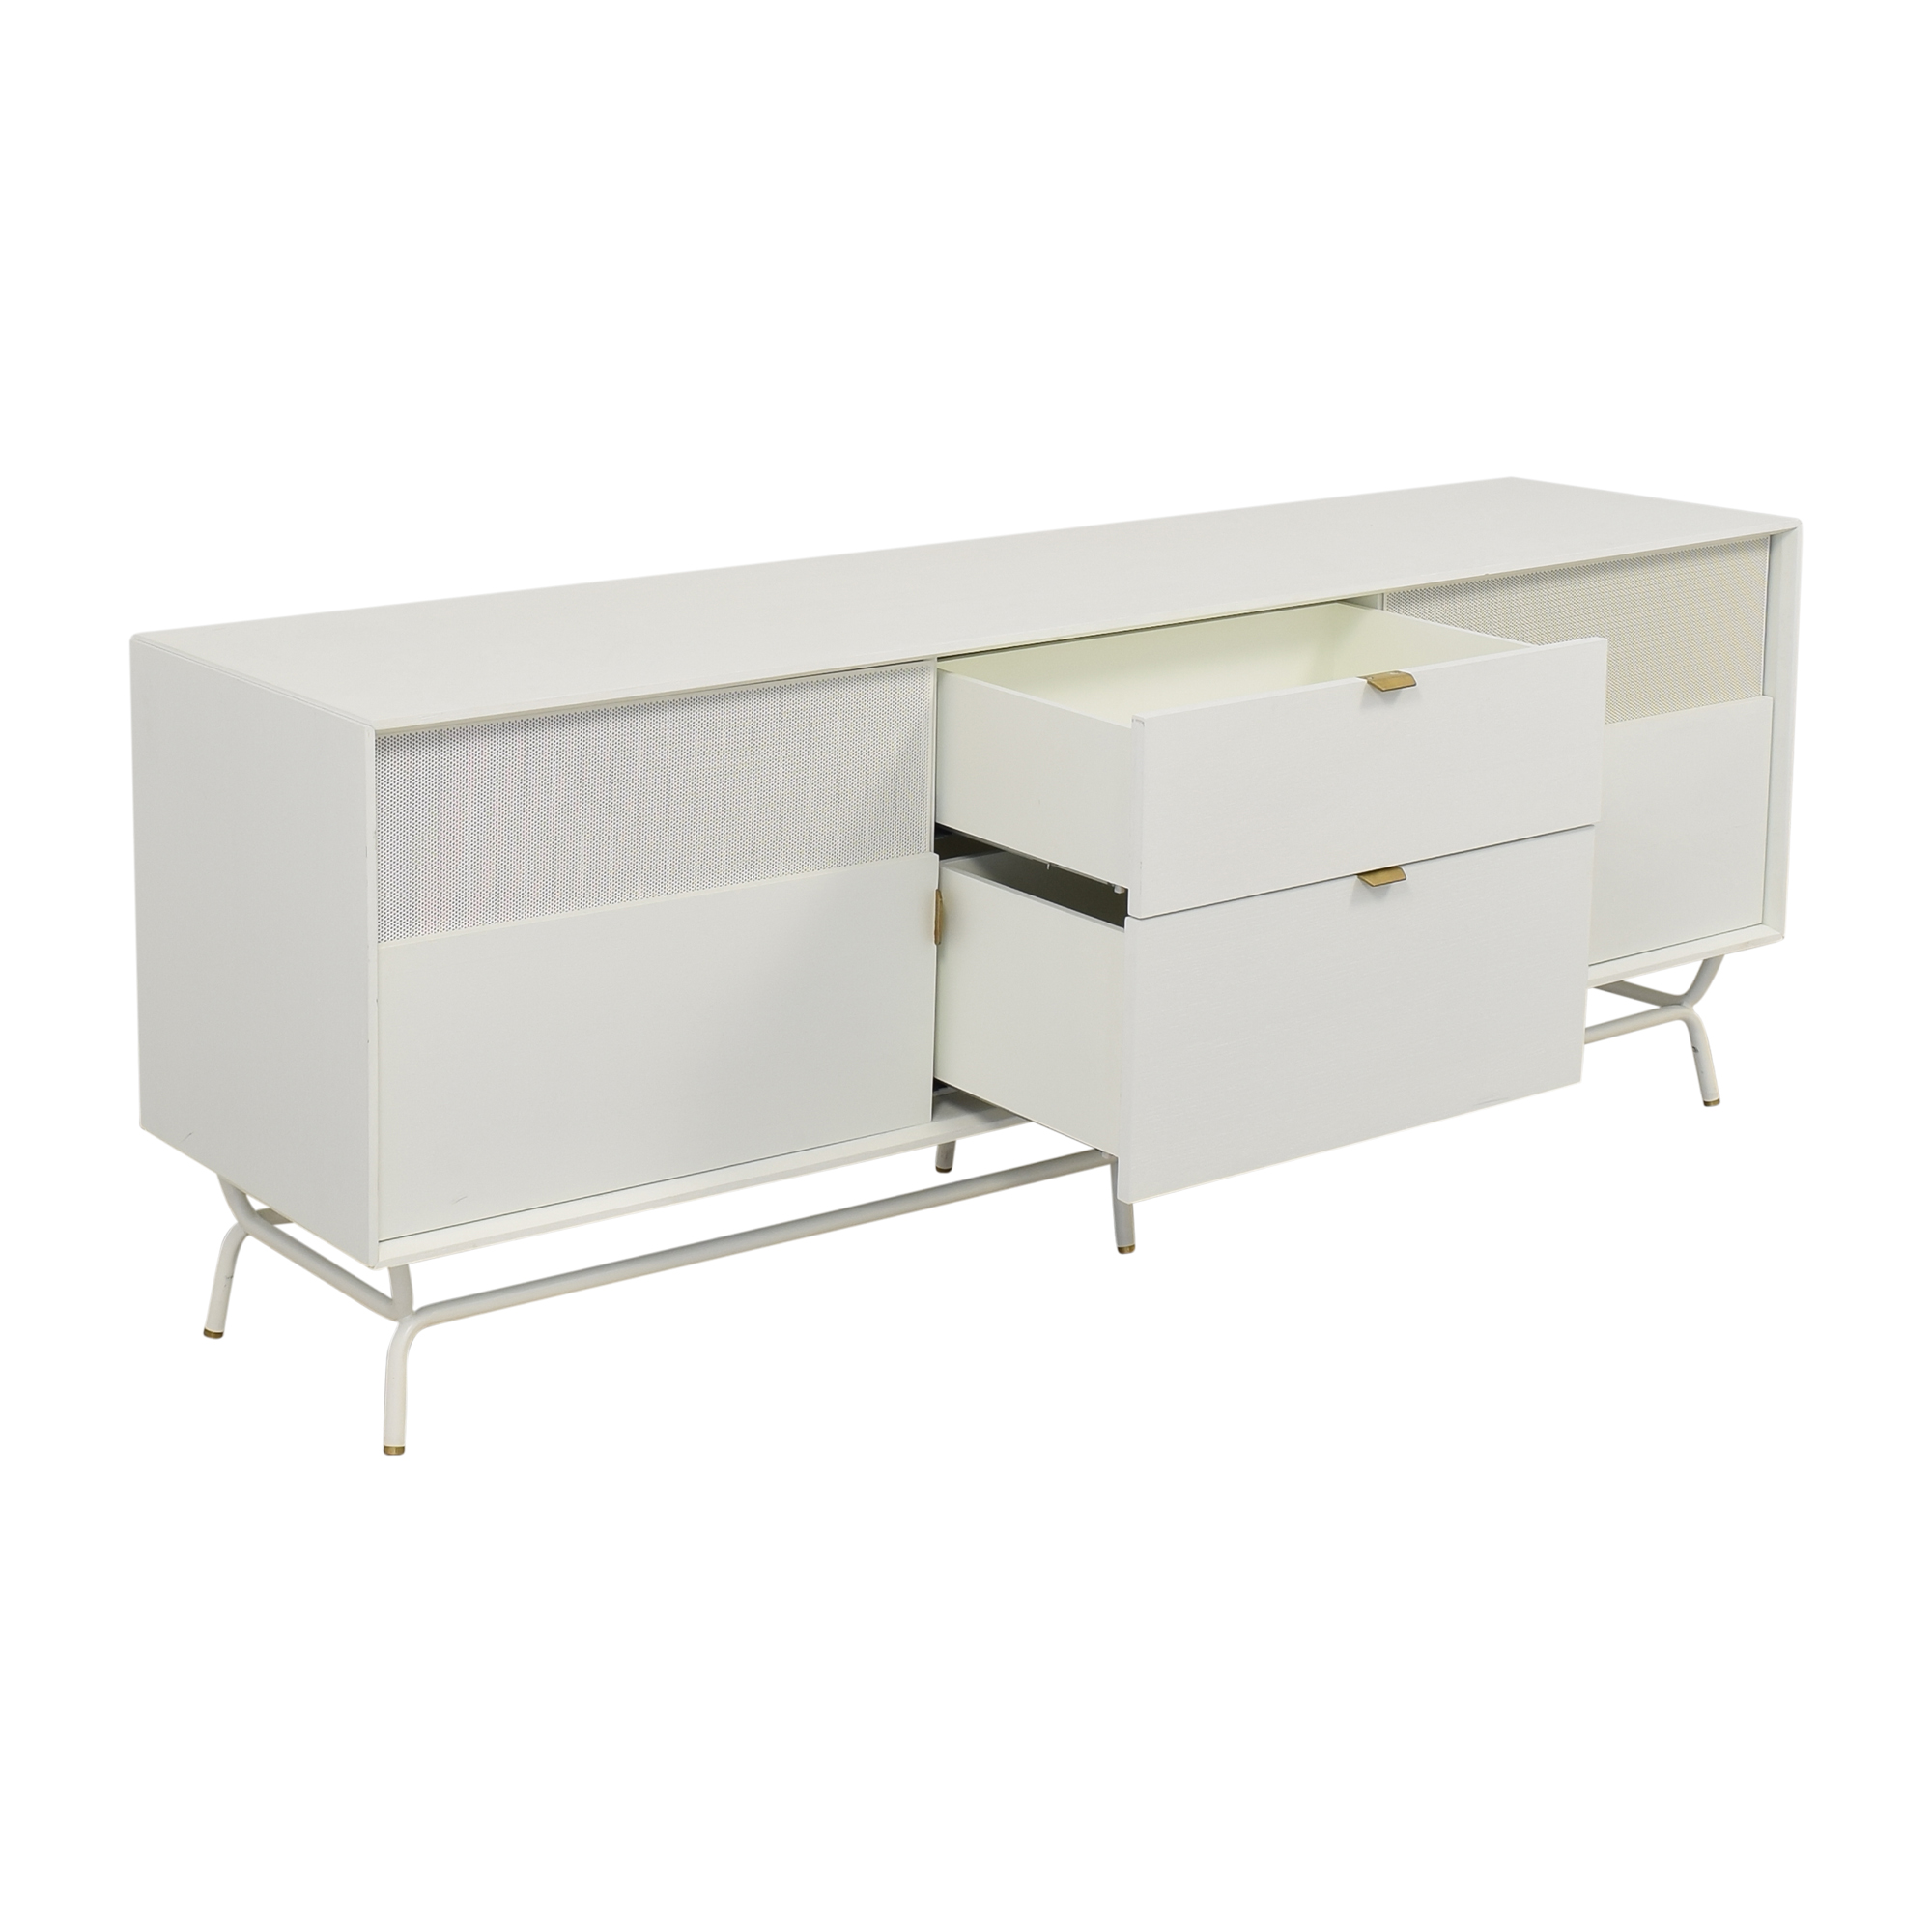 Blu Dot Blu Dot Dang 2 Door / 2 Drawer Console Storage